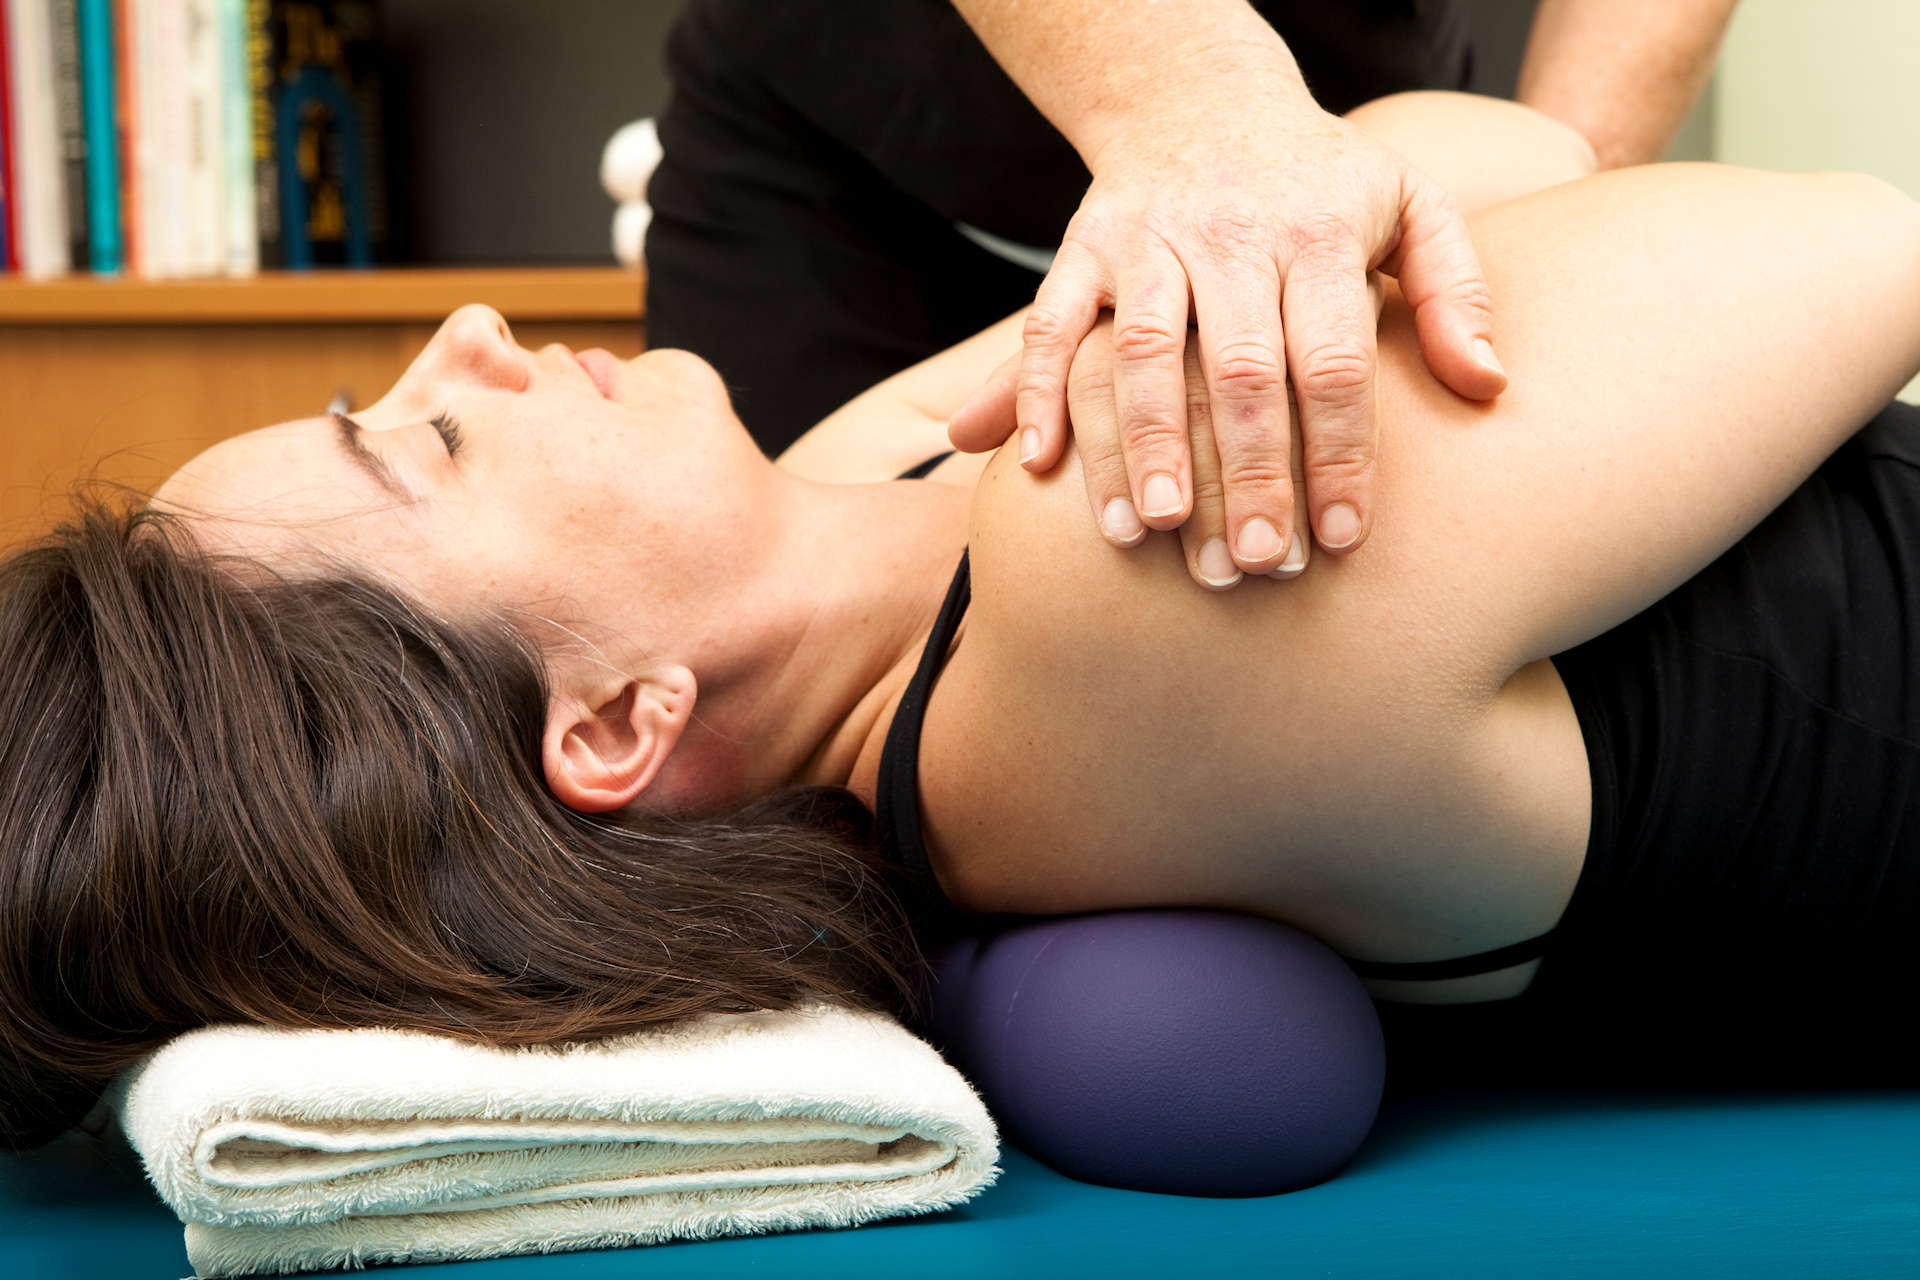 woman receiving physiotherapy on her shoulder with gentle manipulation and her arms crossed lying on her back